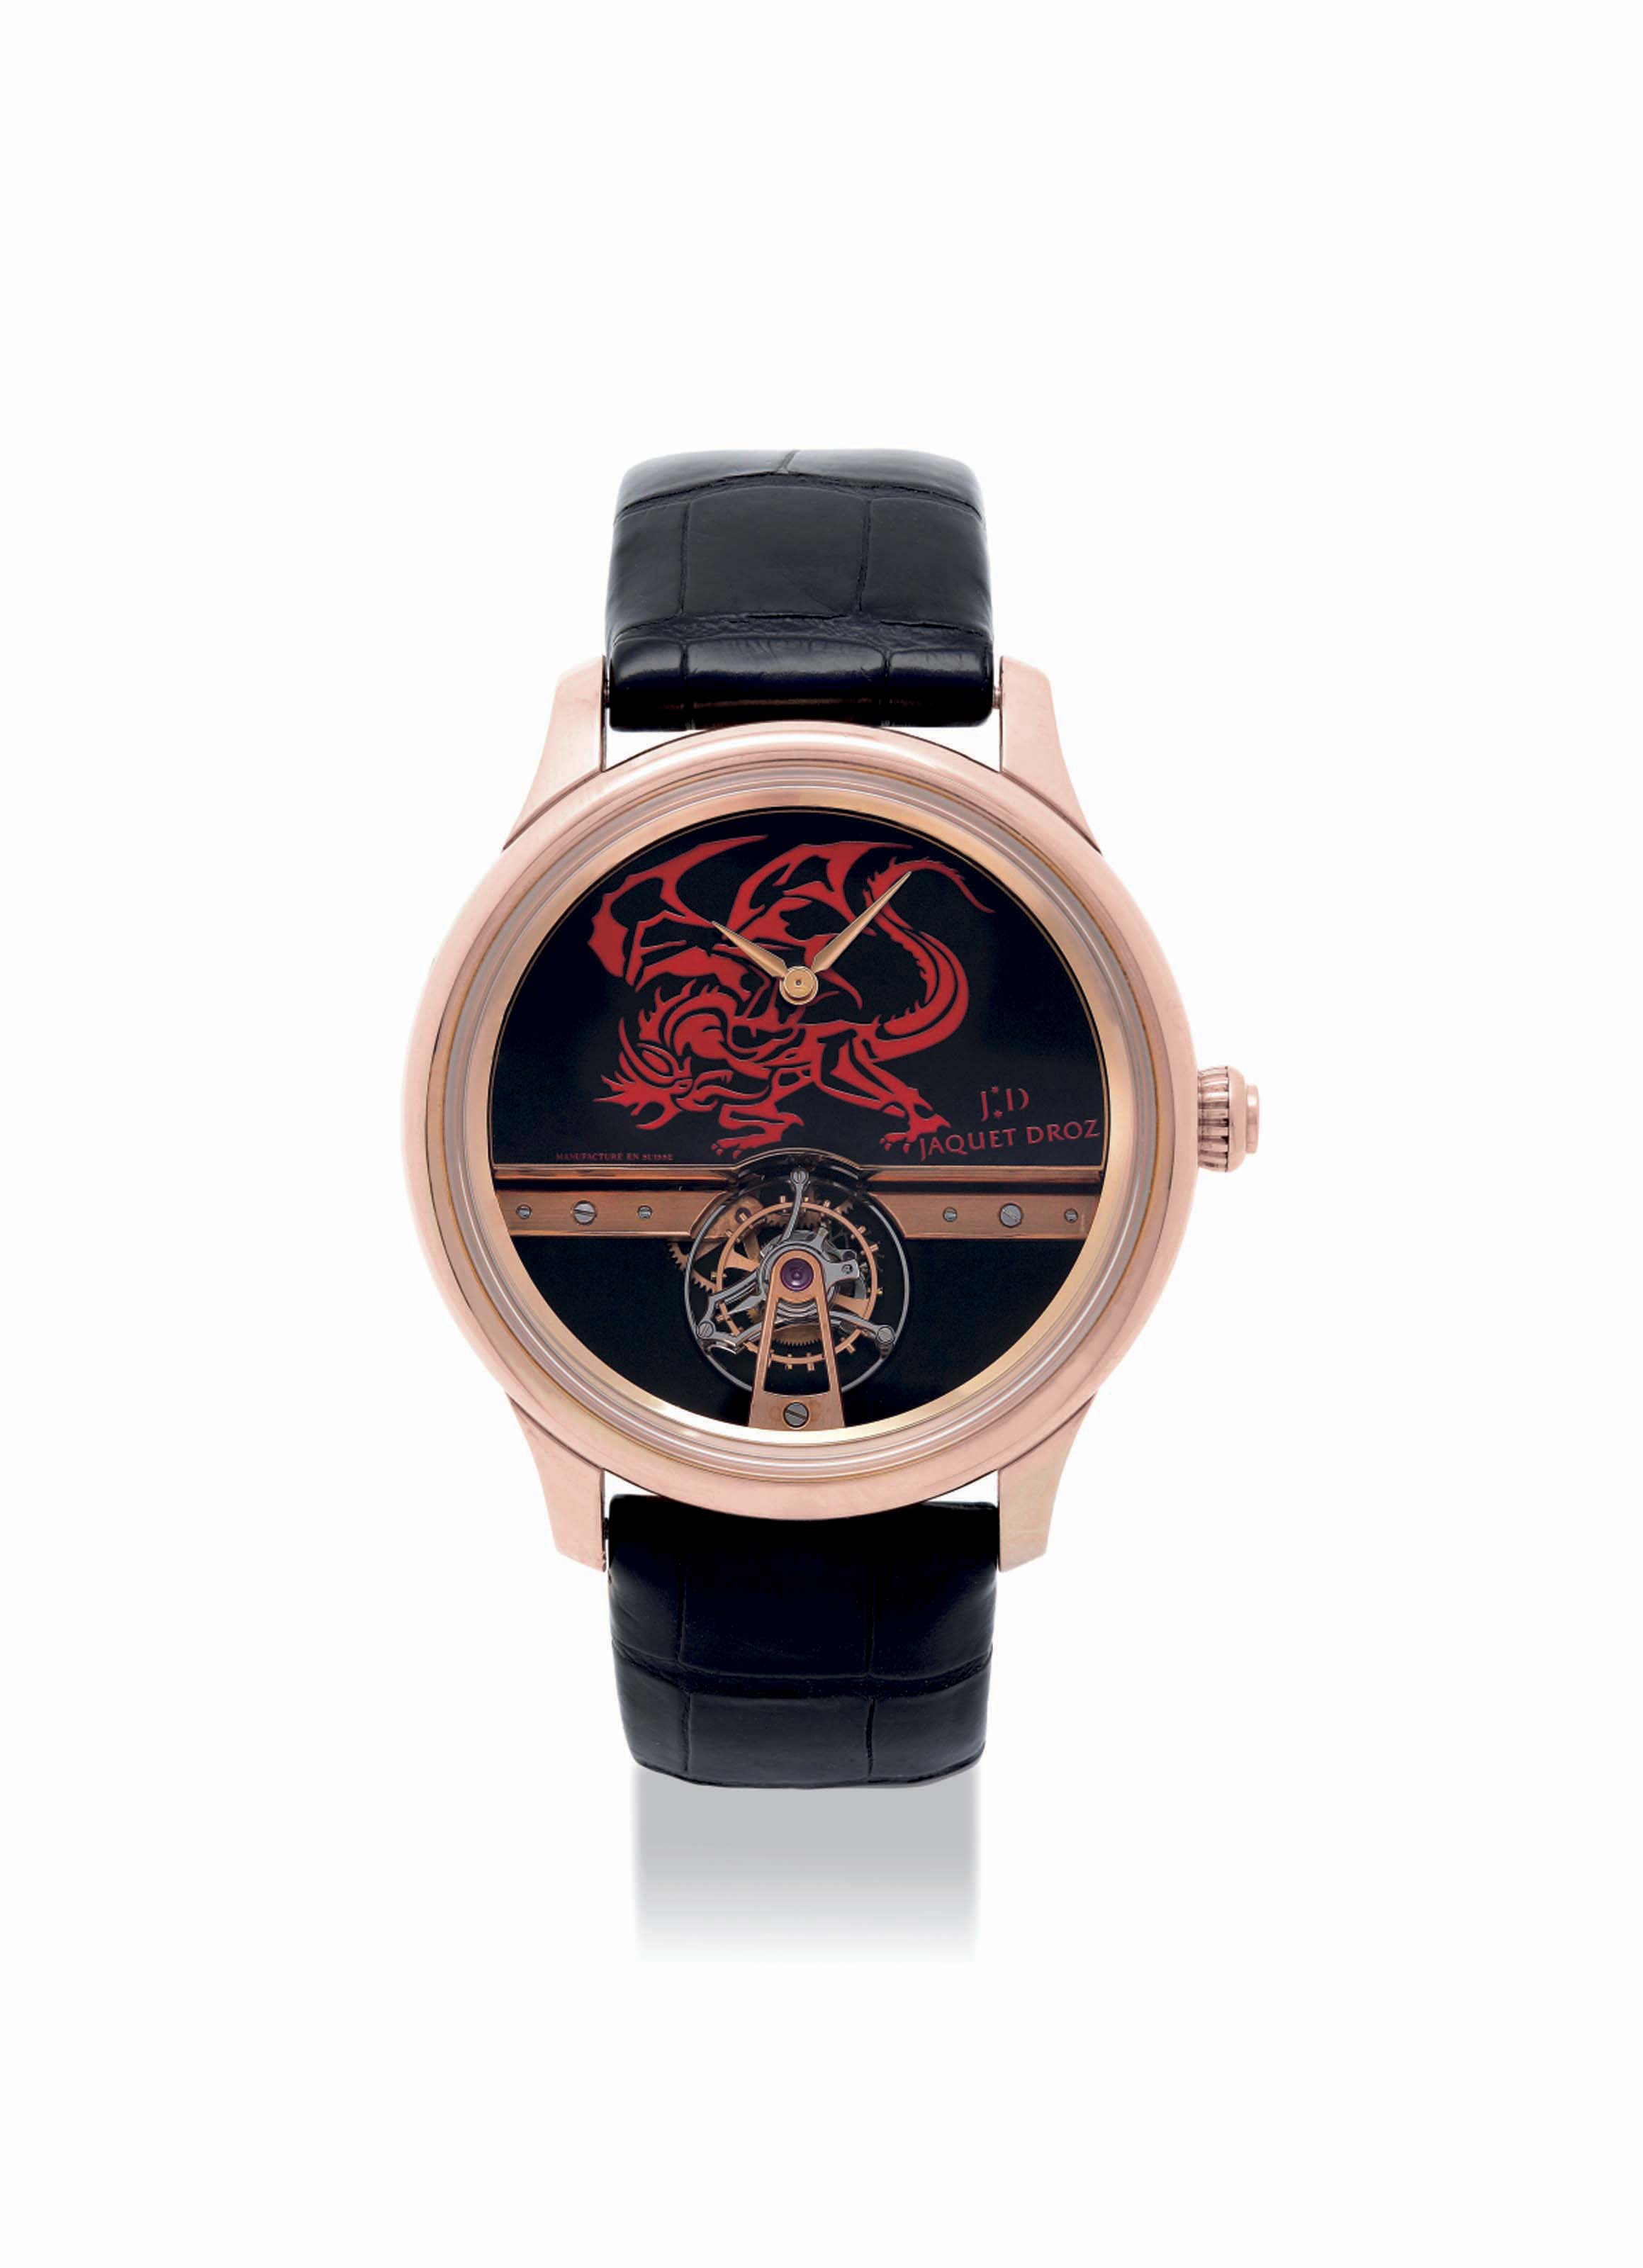 JAQUET DROZ. A VERY FINE AND UNIQUE 18K RED GOLD TOURBILLON WRISTWATCH SIGNED JAQUET DROZ, NO, CIRCA 2008